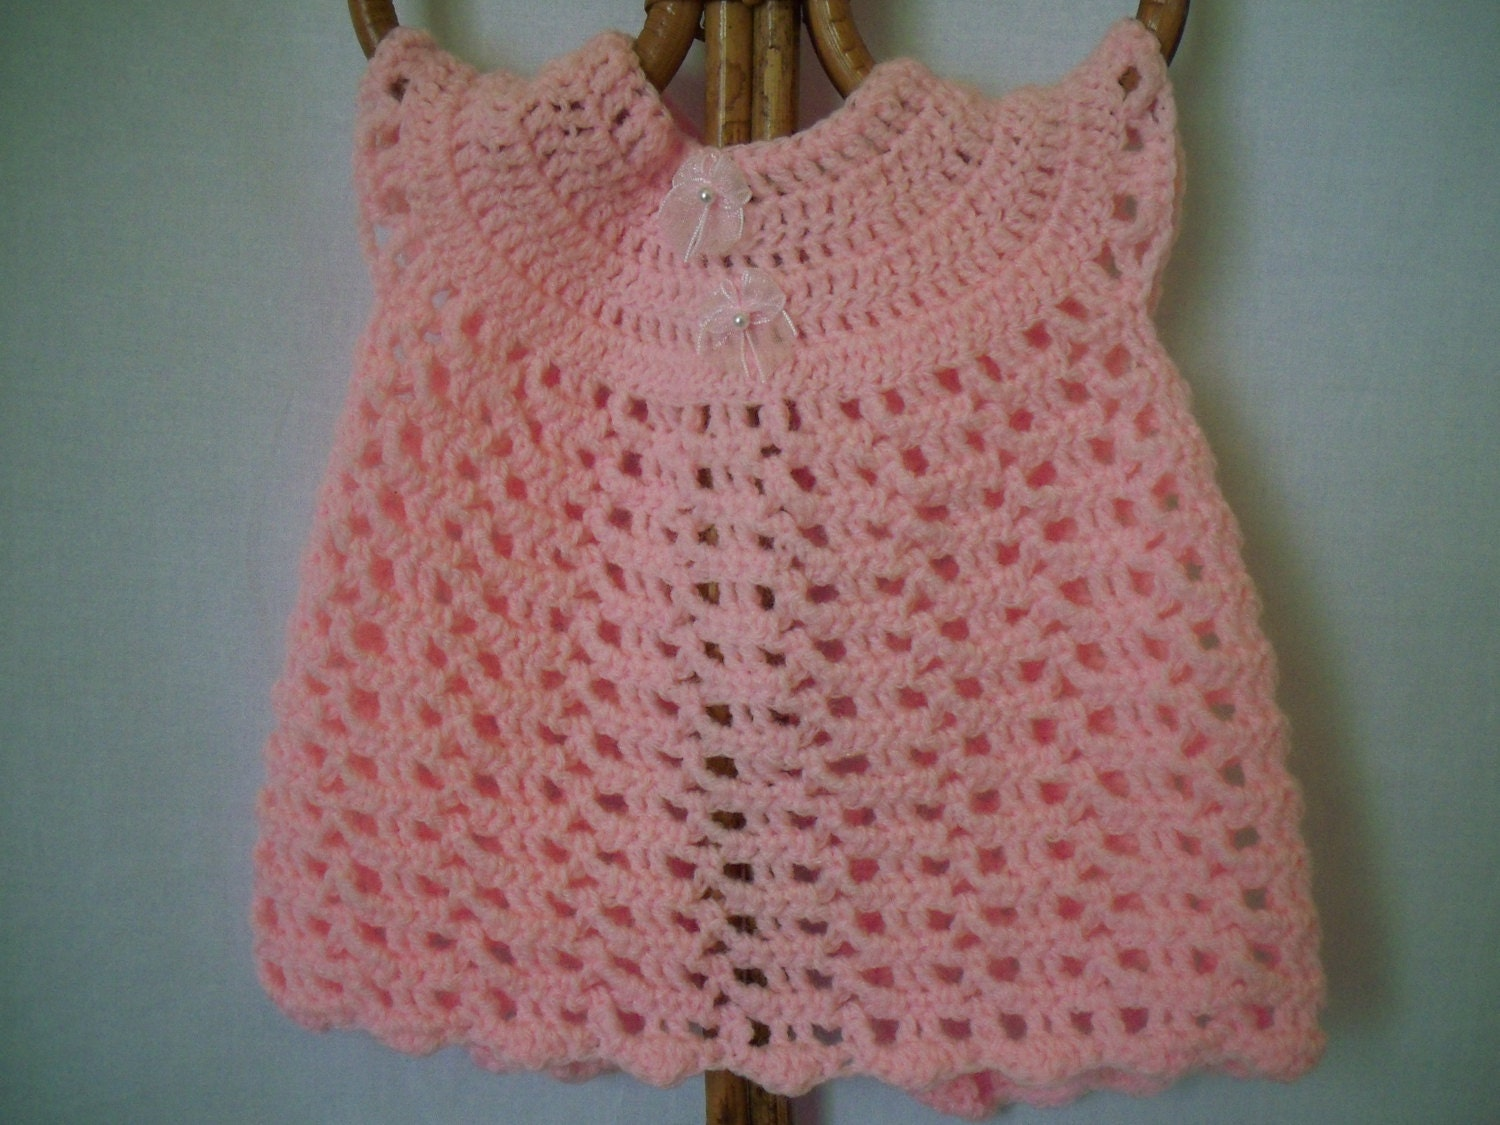 Crochet pink preemie baby or doll dress by